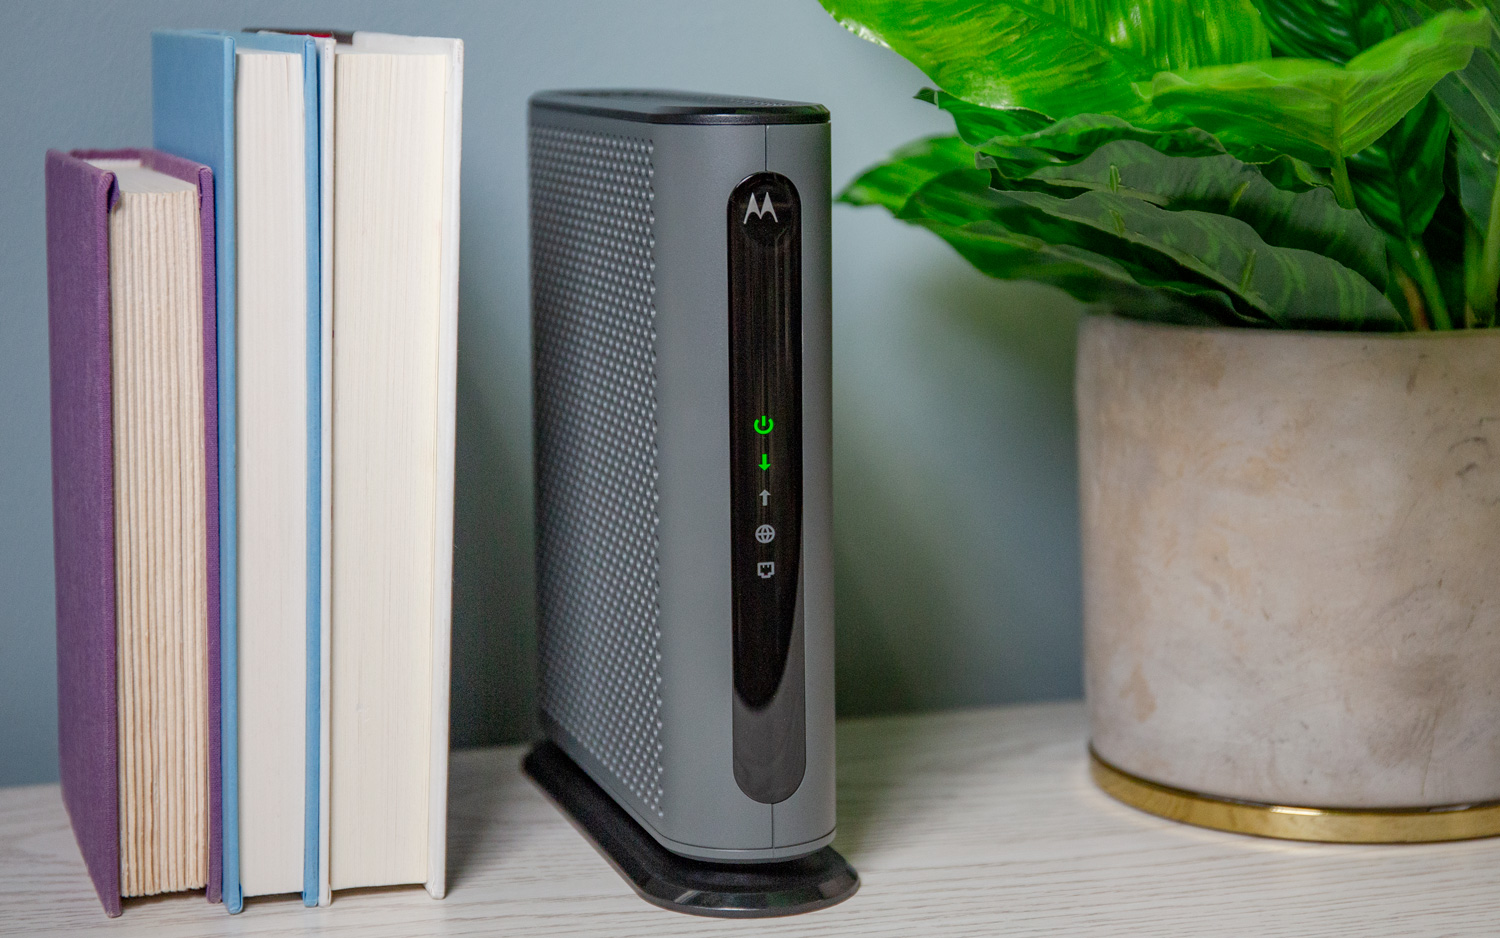 Best Cable Modem 2019 - Basic, High-Speed, DOCSIS 3 1 Reviews | Top